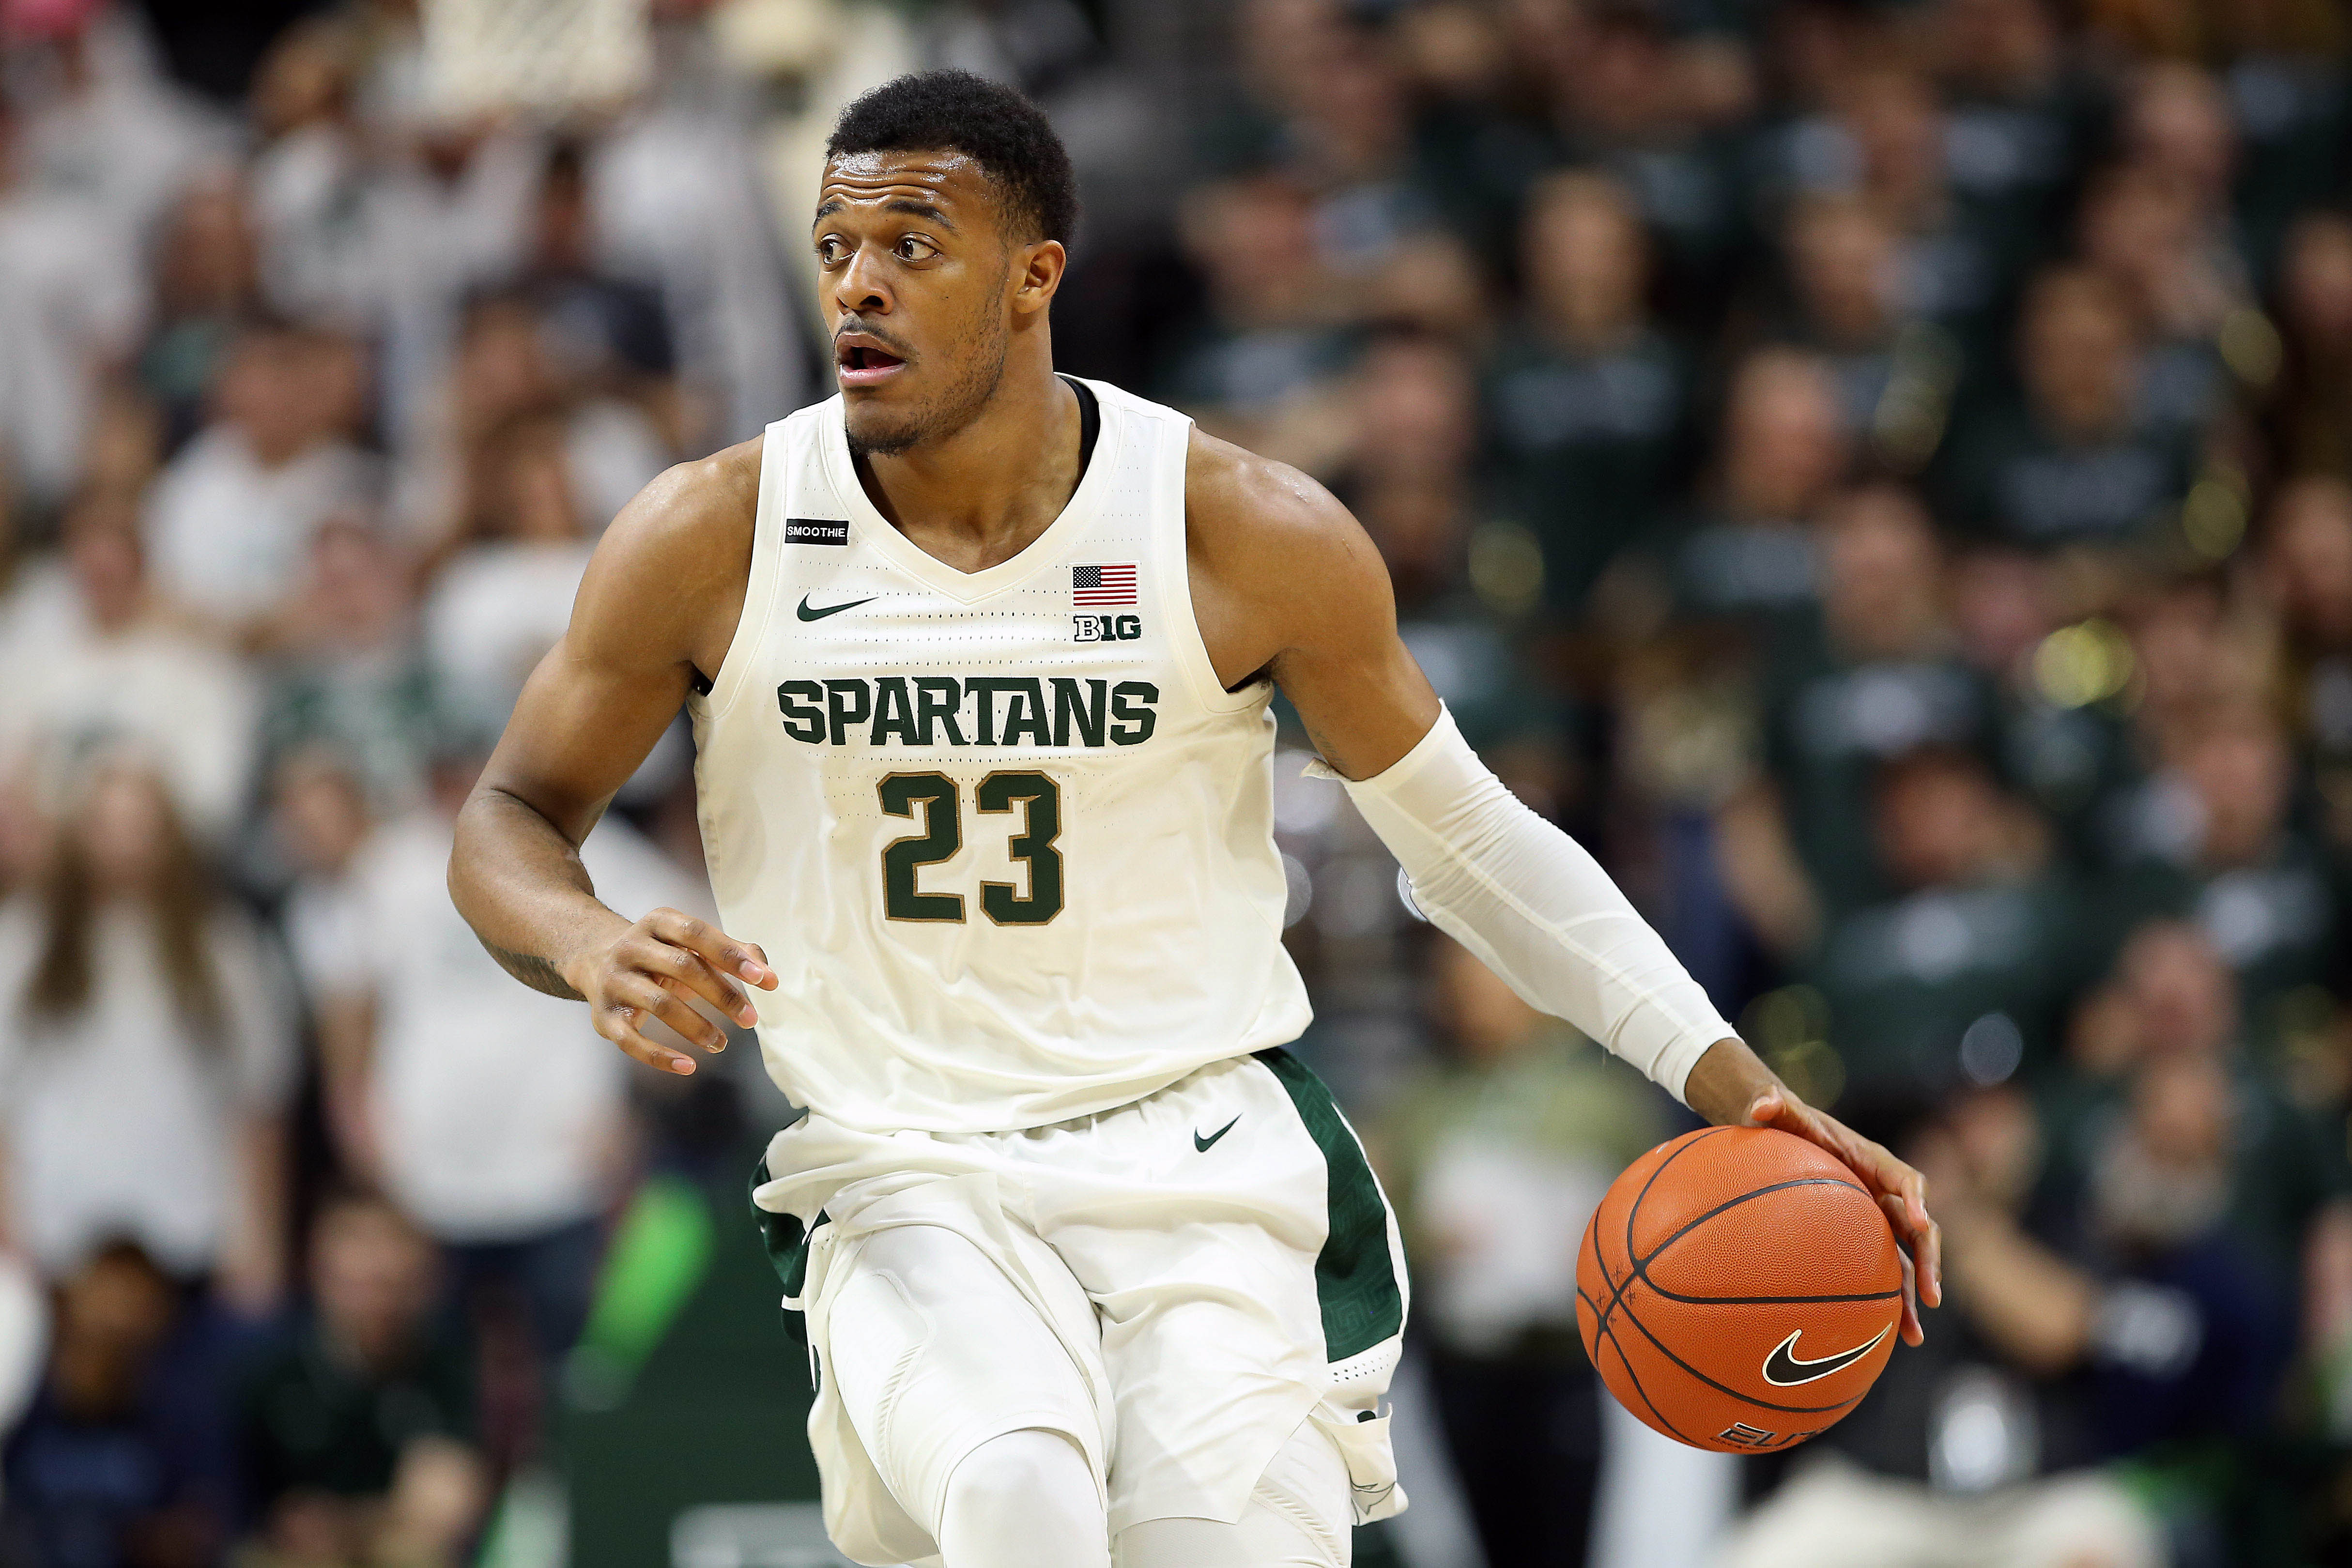 Feb 25, 2020; East Lansing, Michigan, USA; Michigan State Spartans forward Xavier Tillman (23) brings the ball up court during the second half a game against the Iowa Hawkeyes at the Breslin Center.